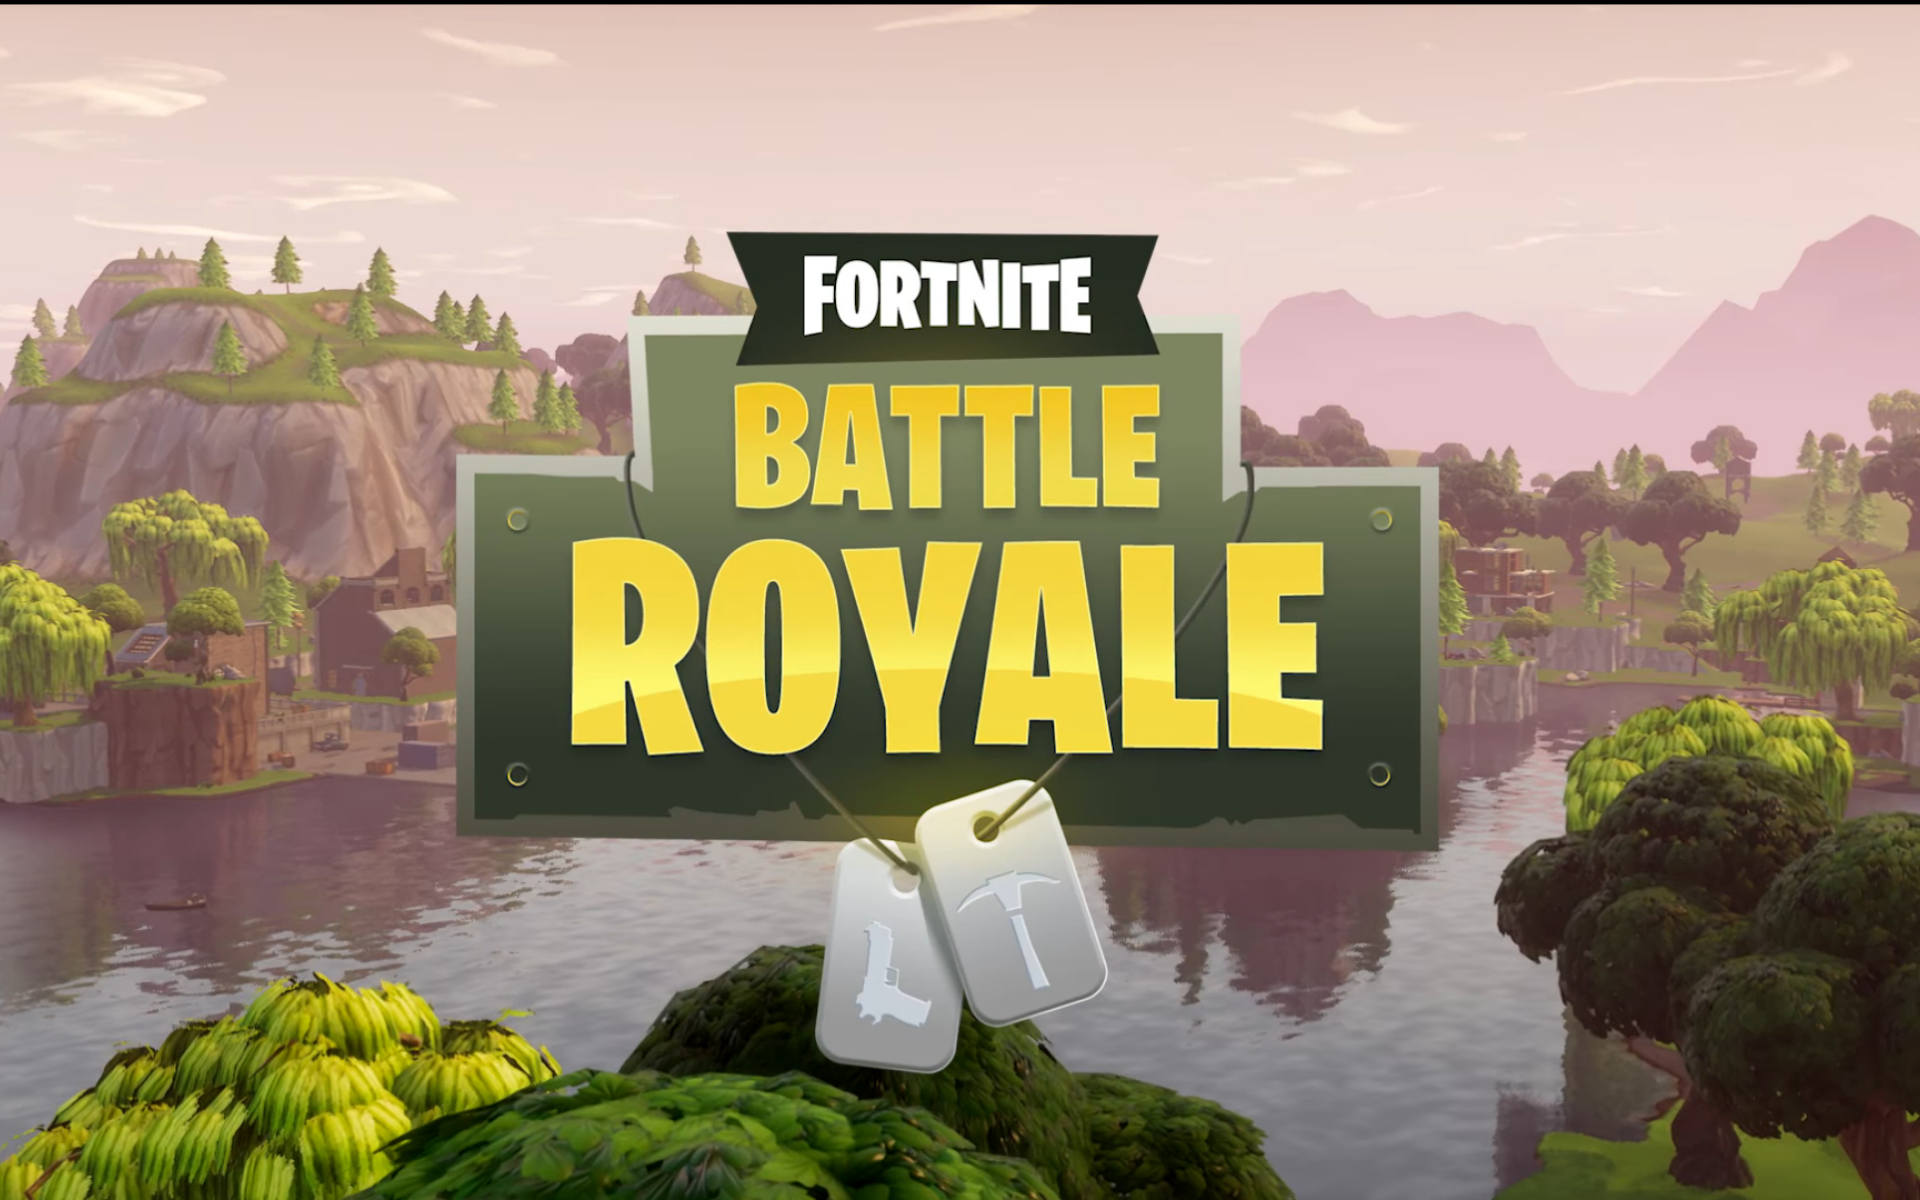 Top 13 Pubg Wallpapers In Full Hd For Pc And Phone: Fortnite Battle Royale Game Poster, Full HD Wallpaper